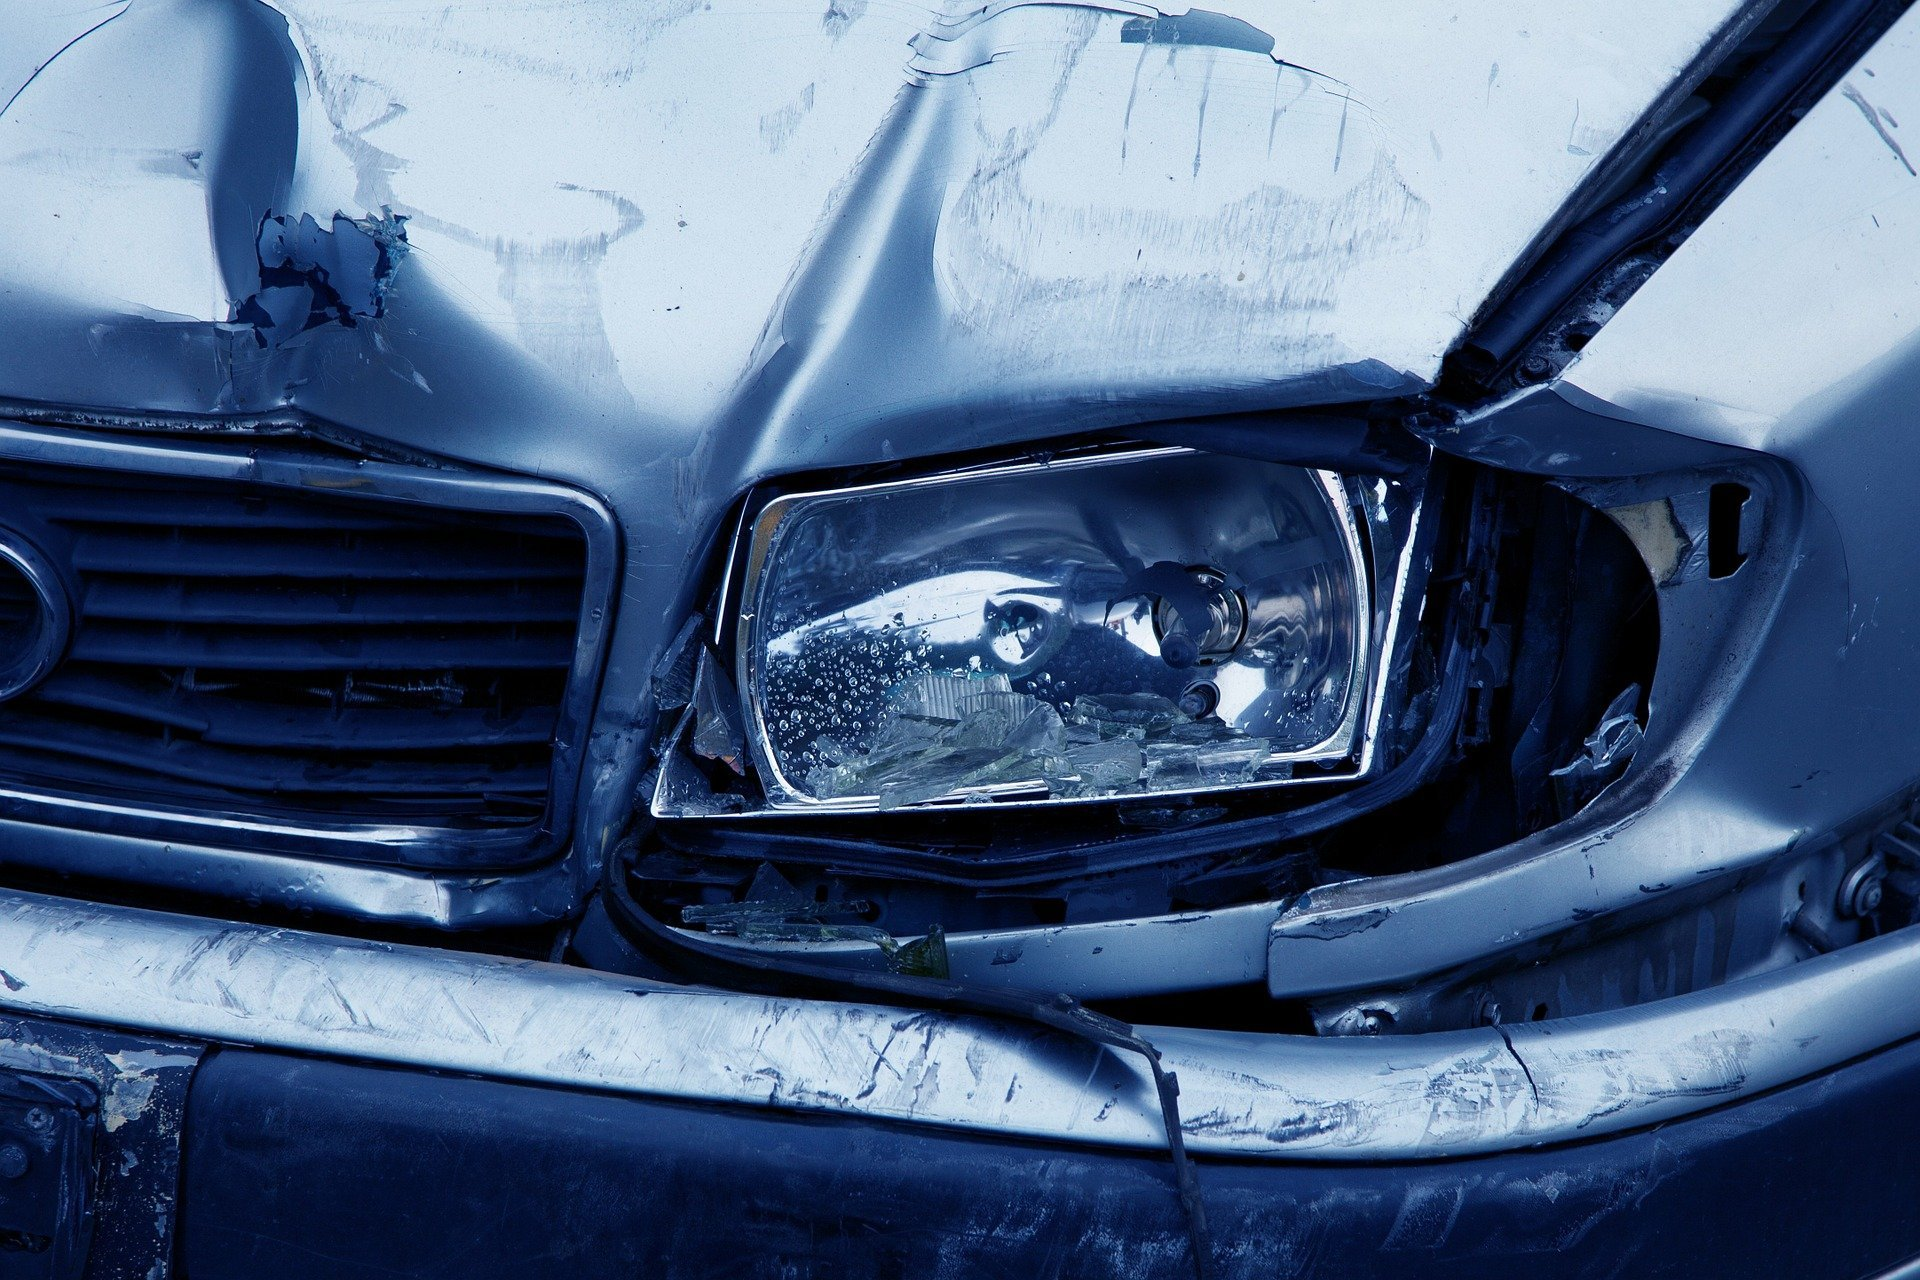 Phare d'une voiture accidentée | Source : Pixabay